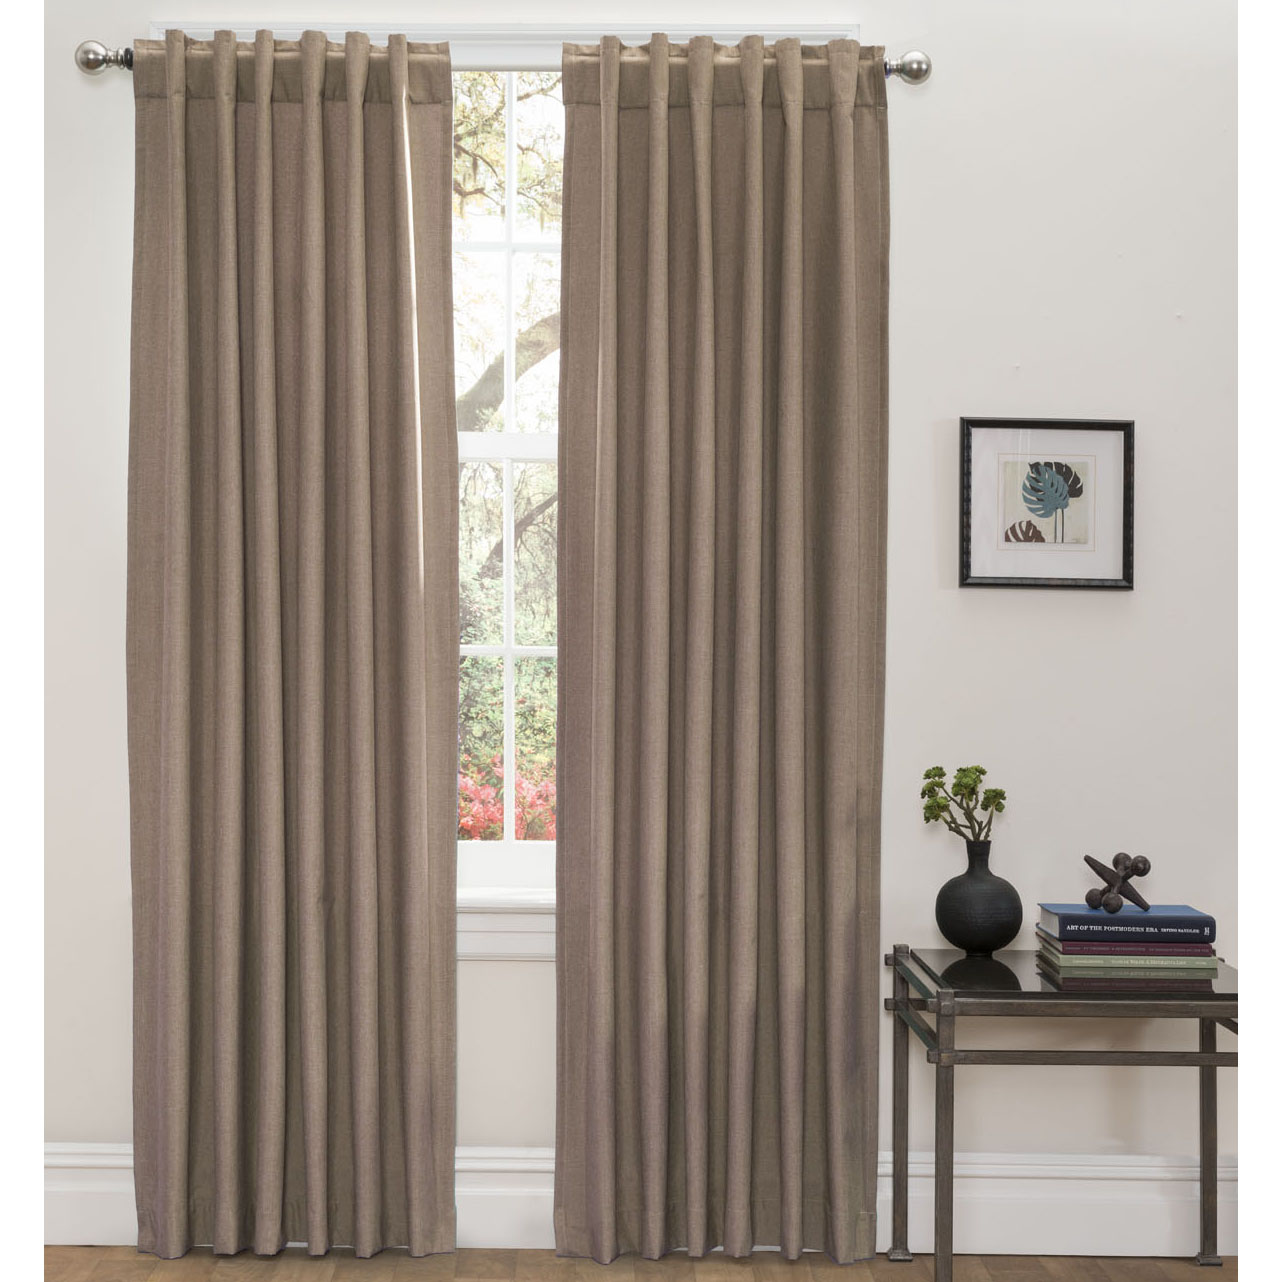 Set Of 2 Textured Thermal Blackout Window Curtain Panels